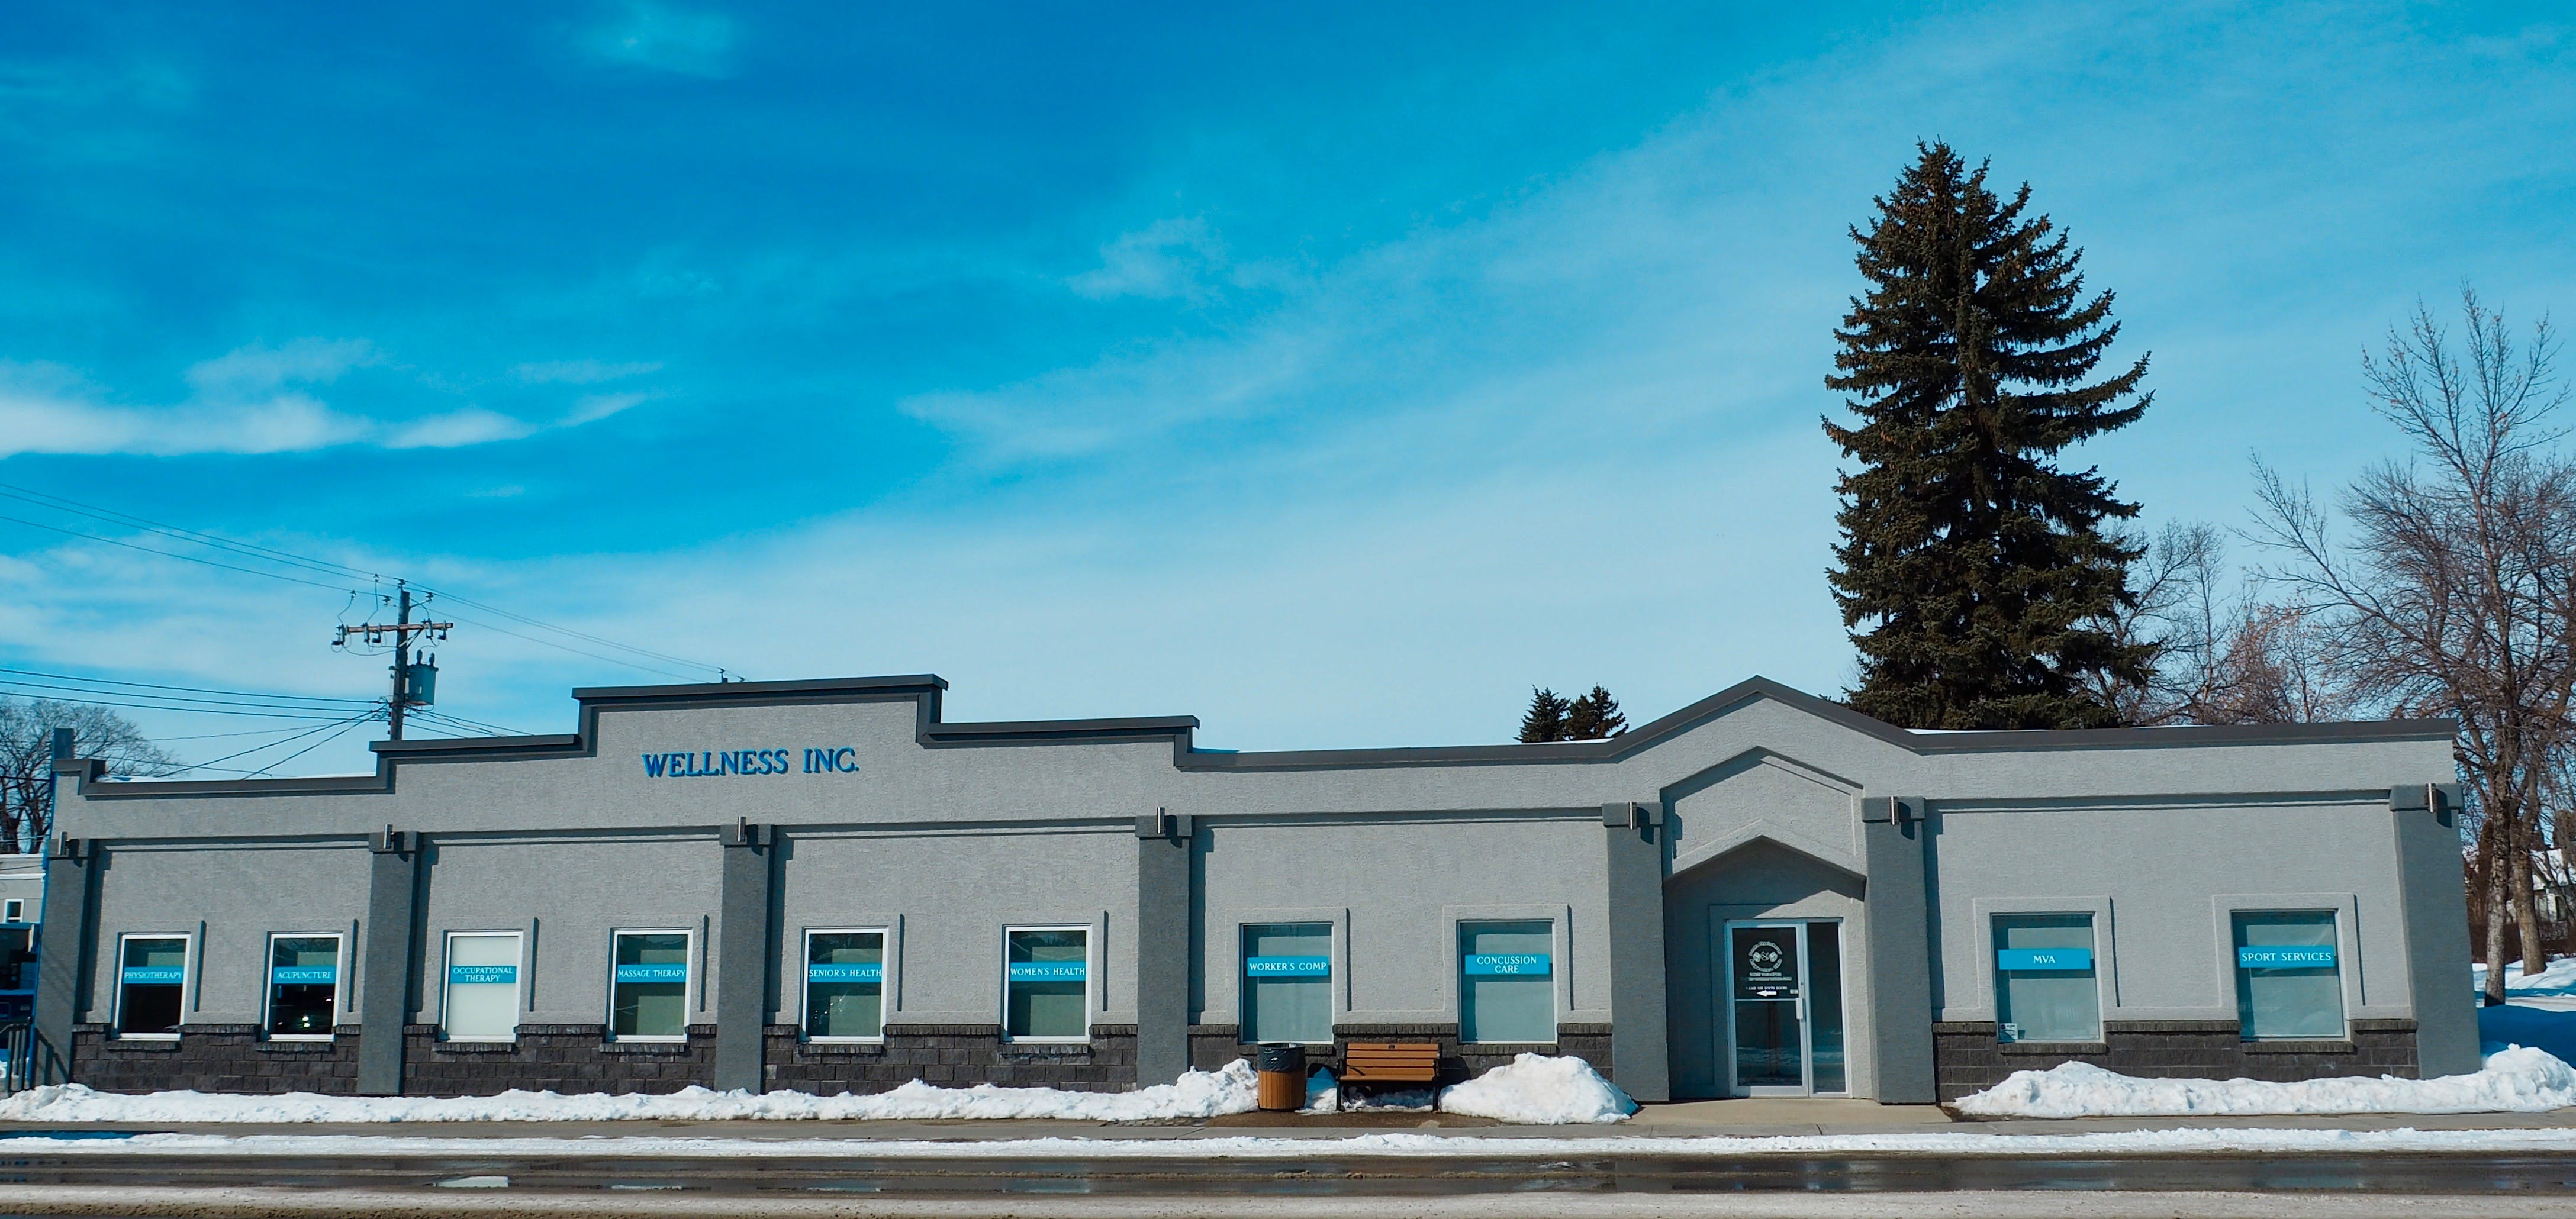 Free stock photo of building with blue skies, Wellness centre